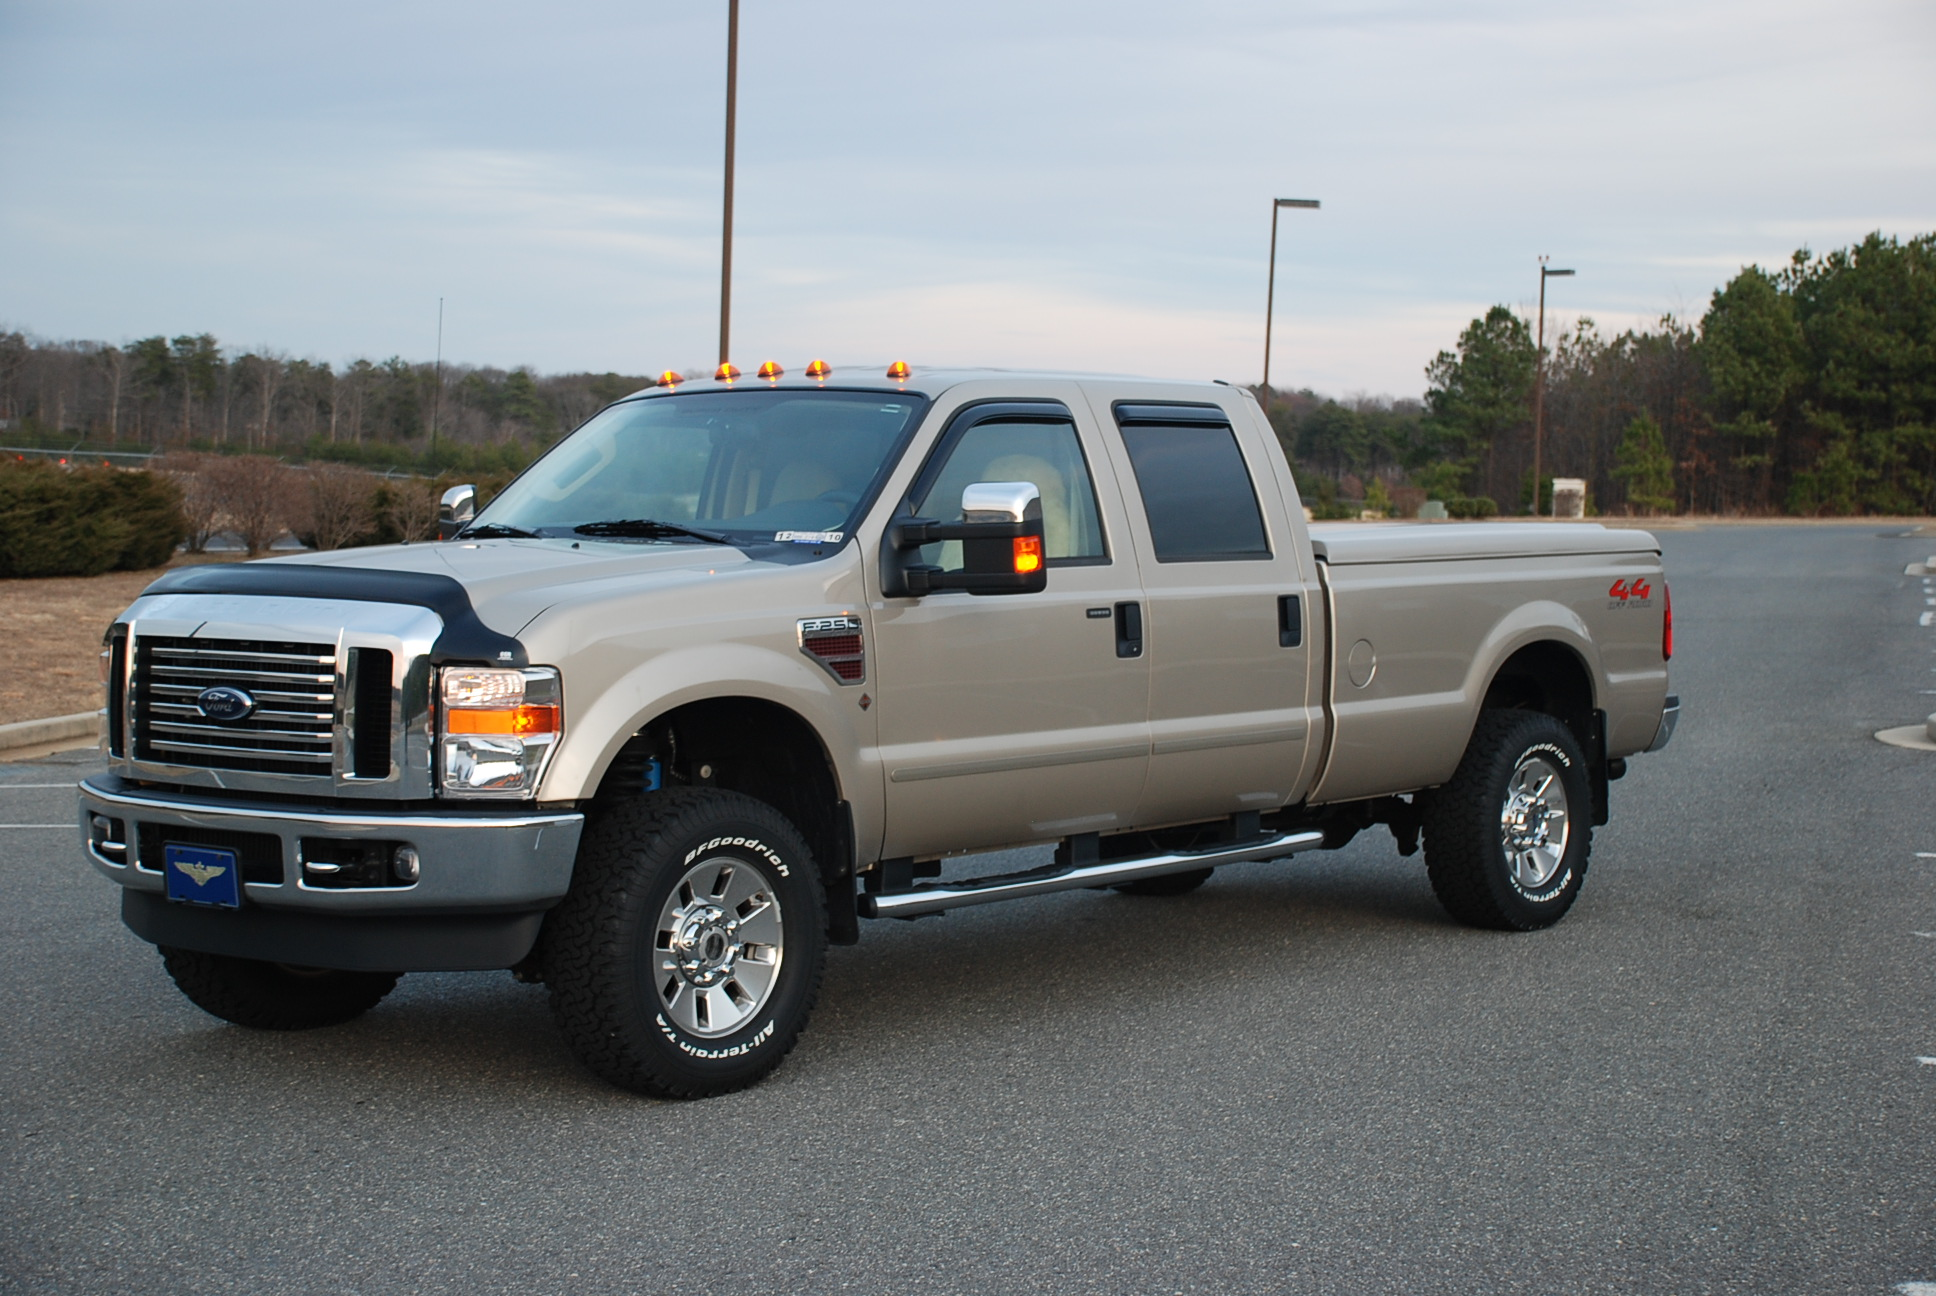 Superduty Chrome Bug Shield on Chrome Package Pics? - Diesel Forum - TheDieselStop.com